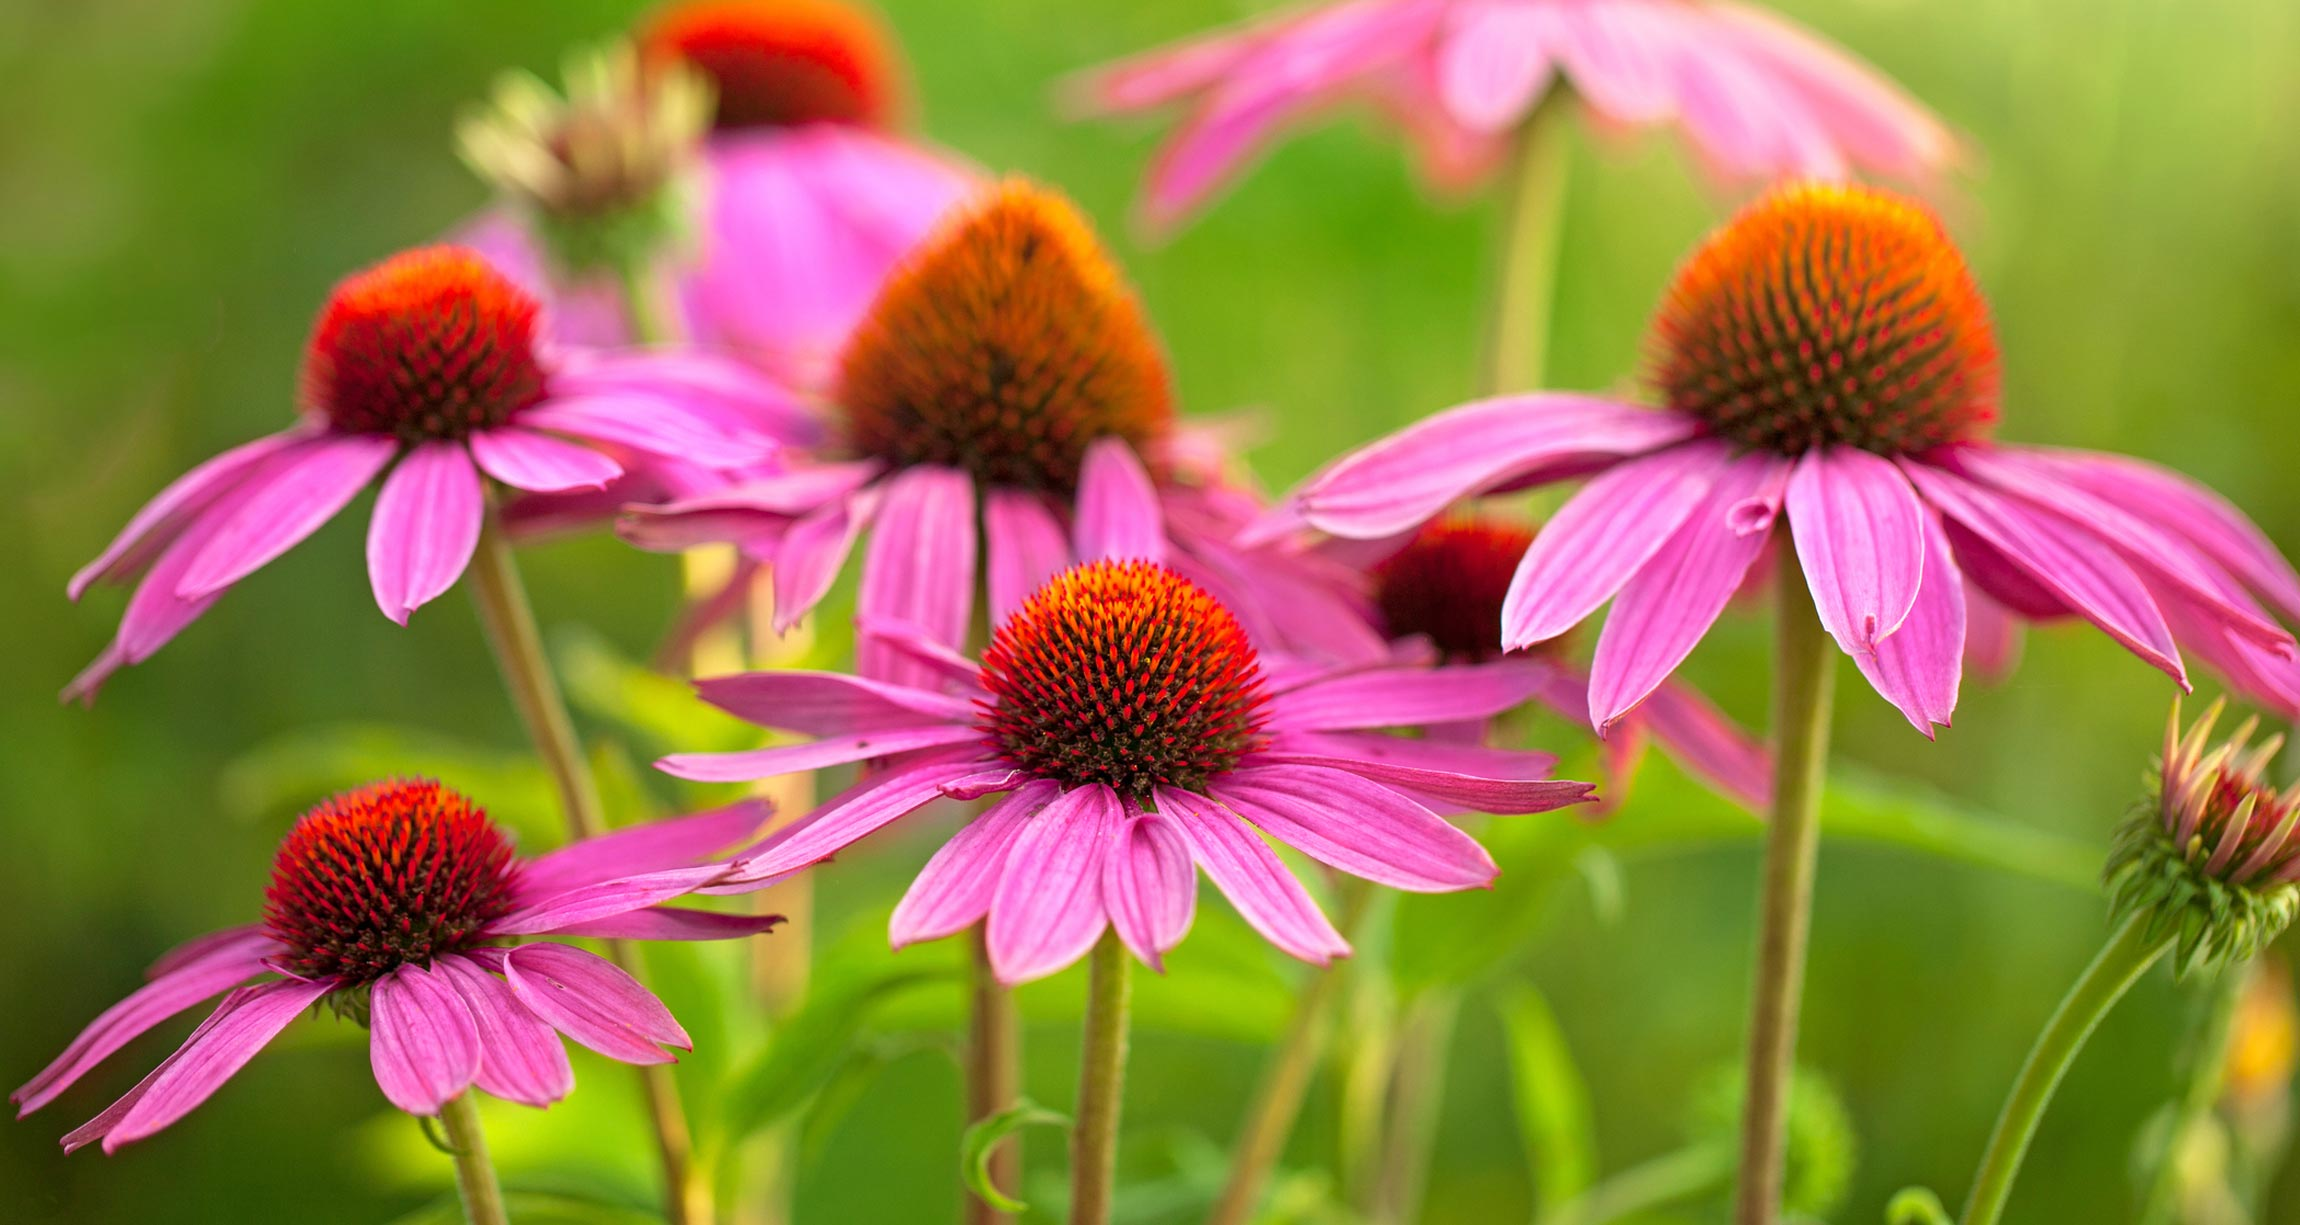 8 Science-Backed Uses for Echinacea (Boosting Immunity, Colds and Flu, and More)